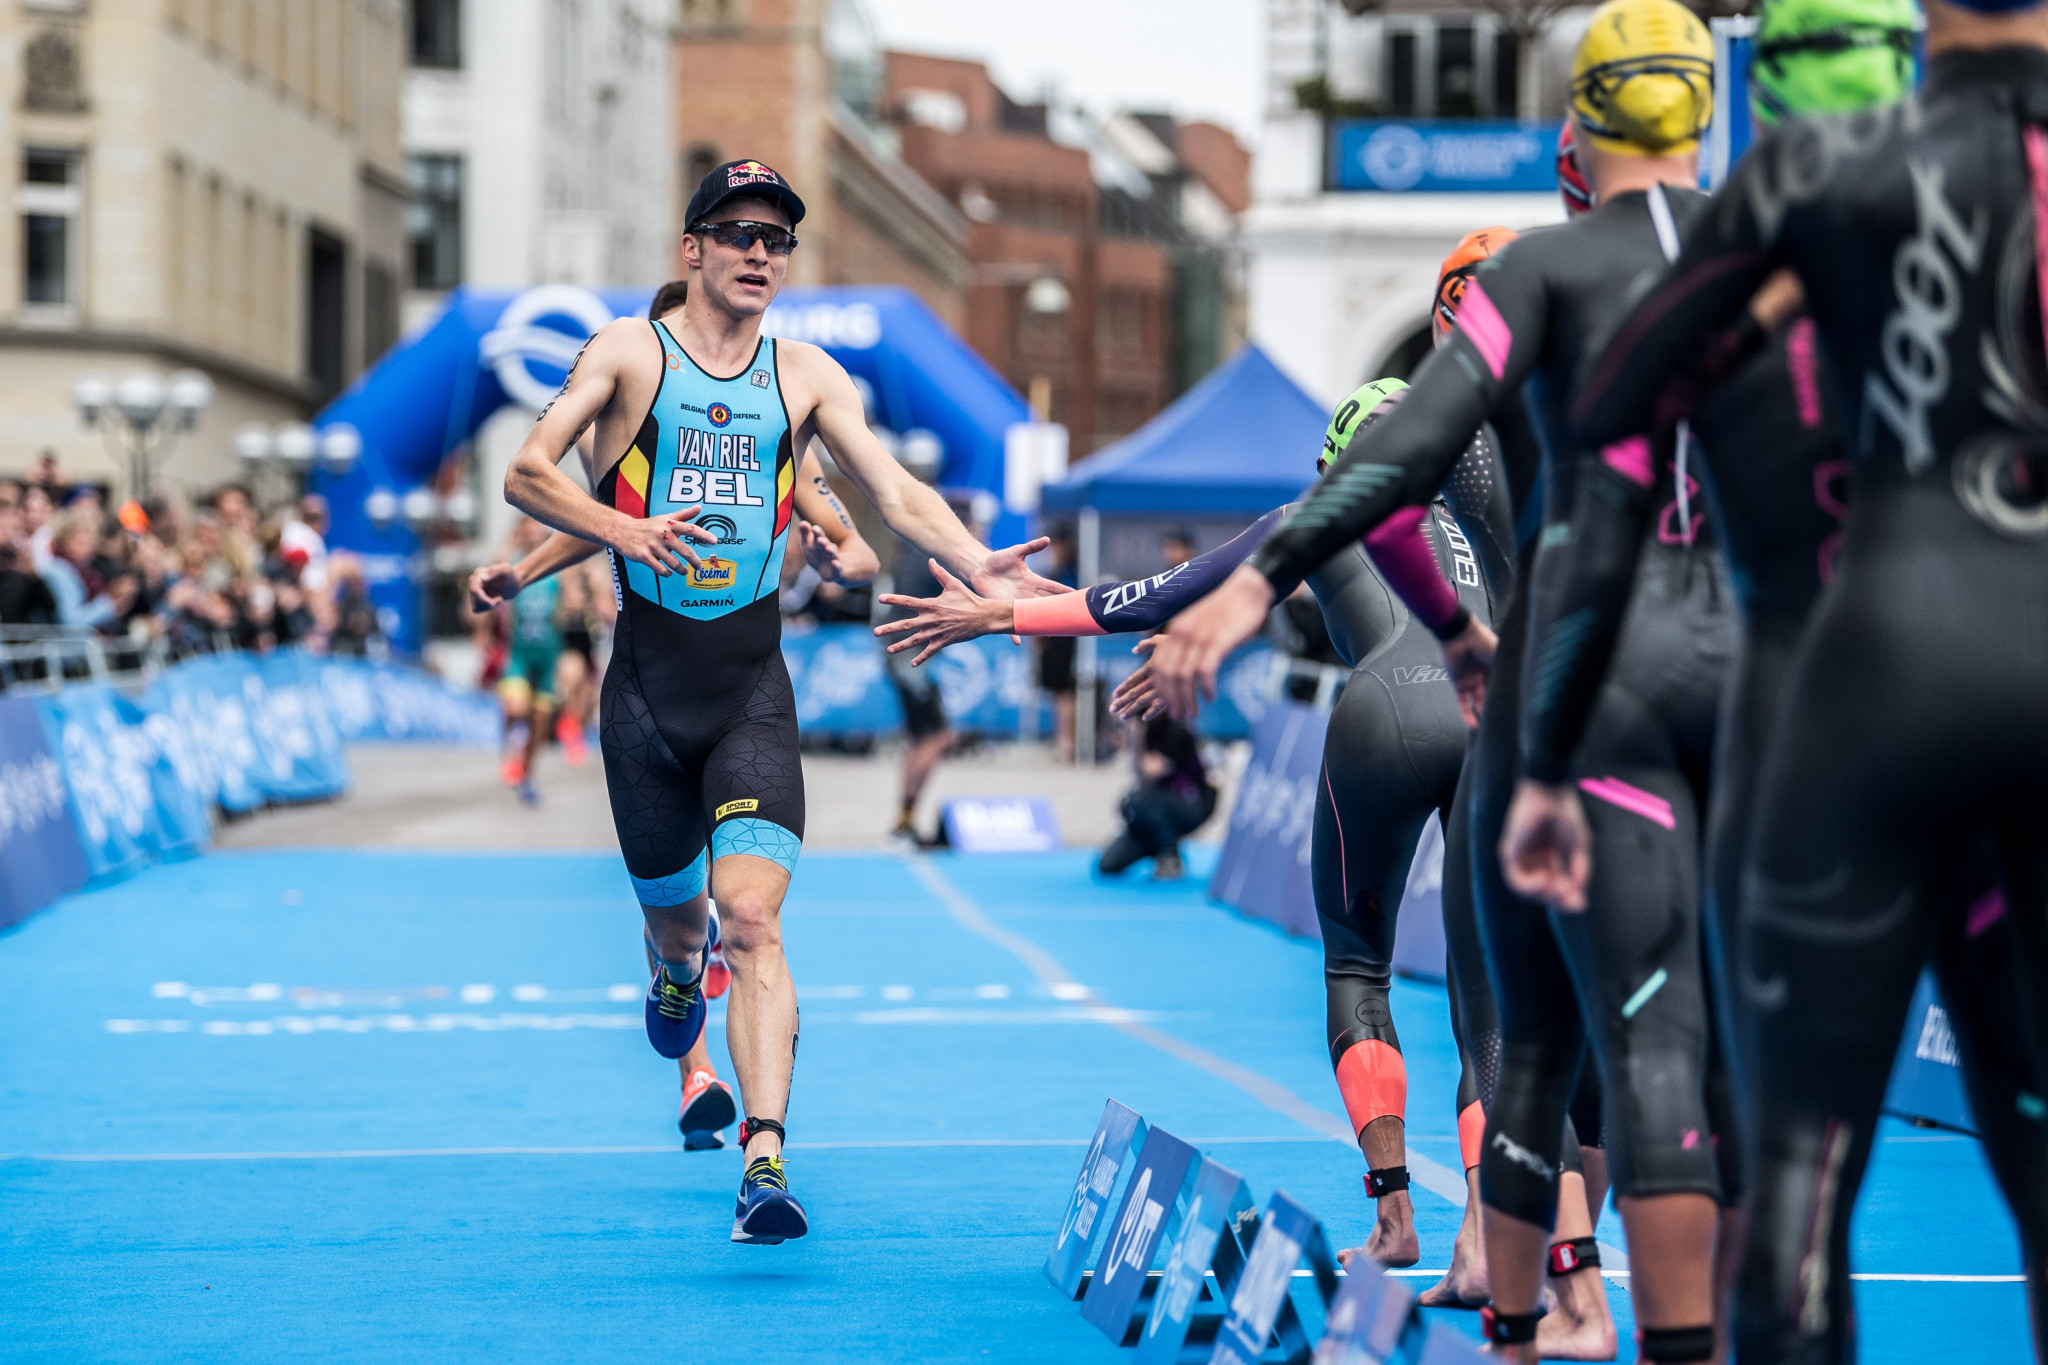 Marten van Riel will be hoping to secure Belgium a place in the mixed relay event at Tokyo 2020 ©Getty Images